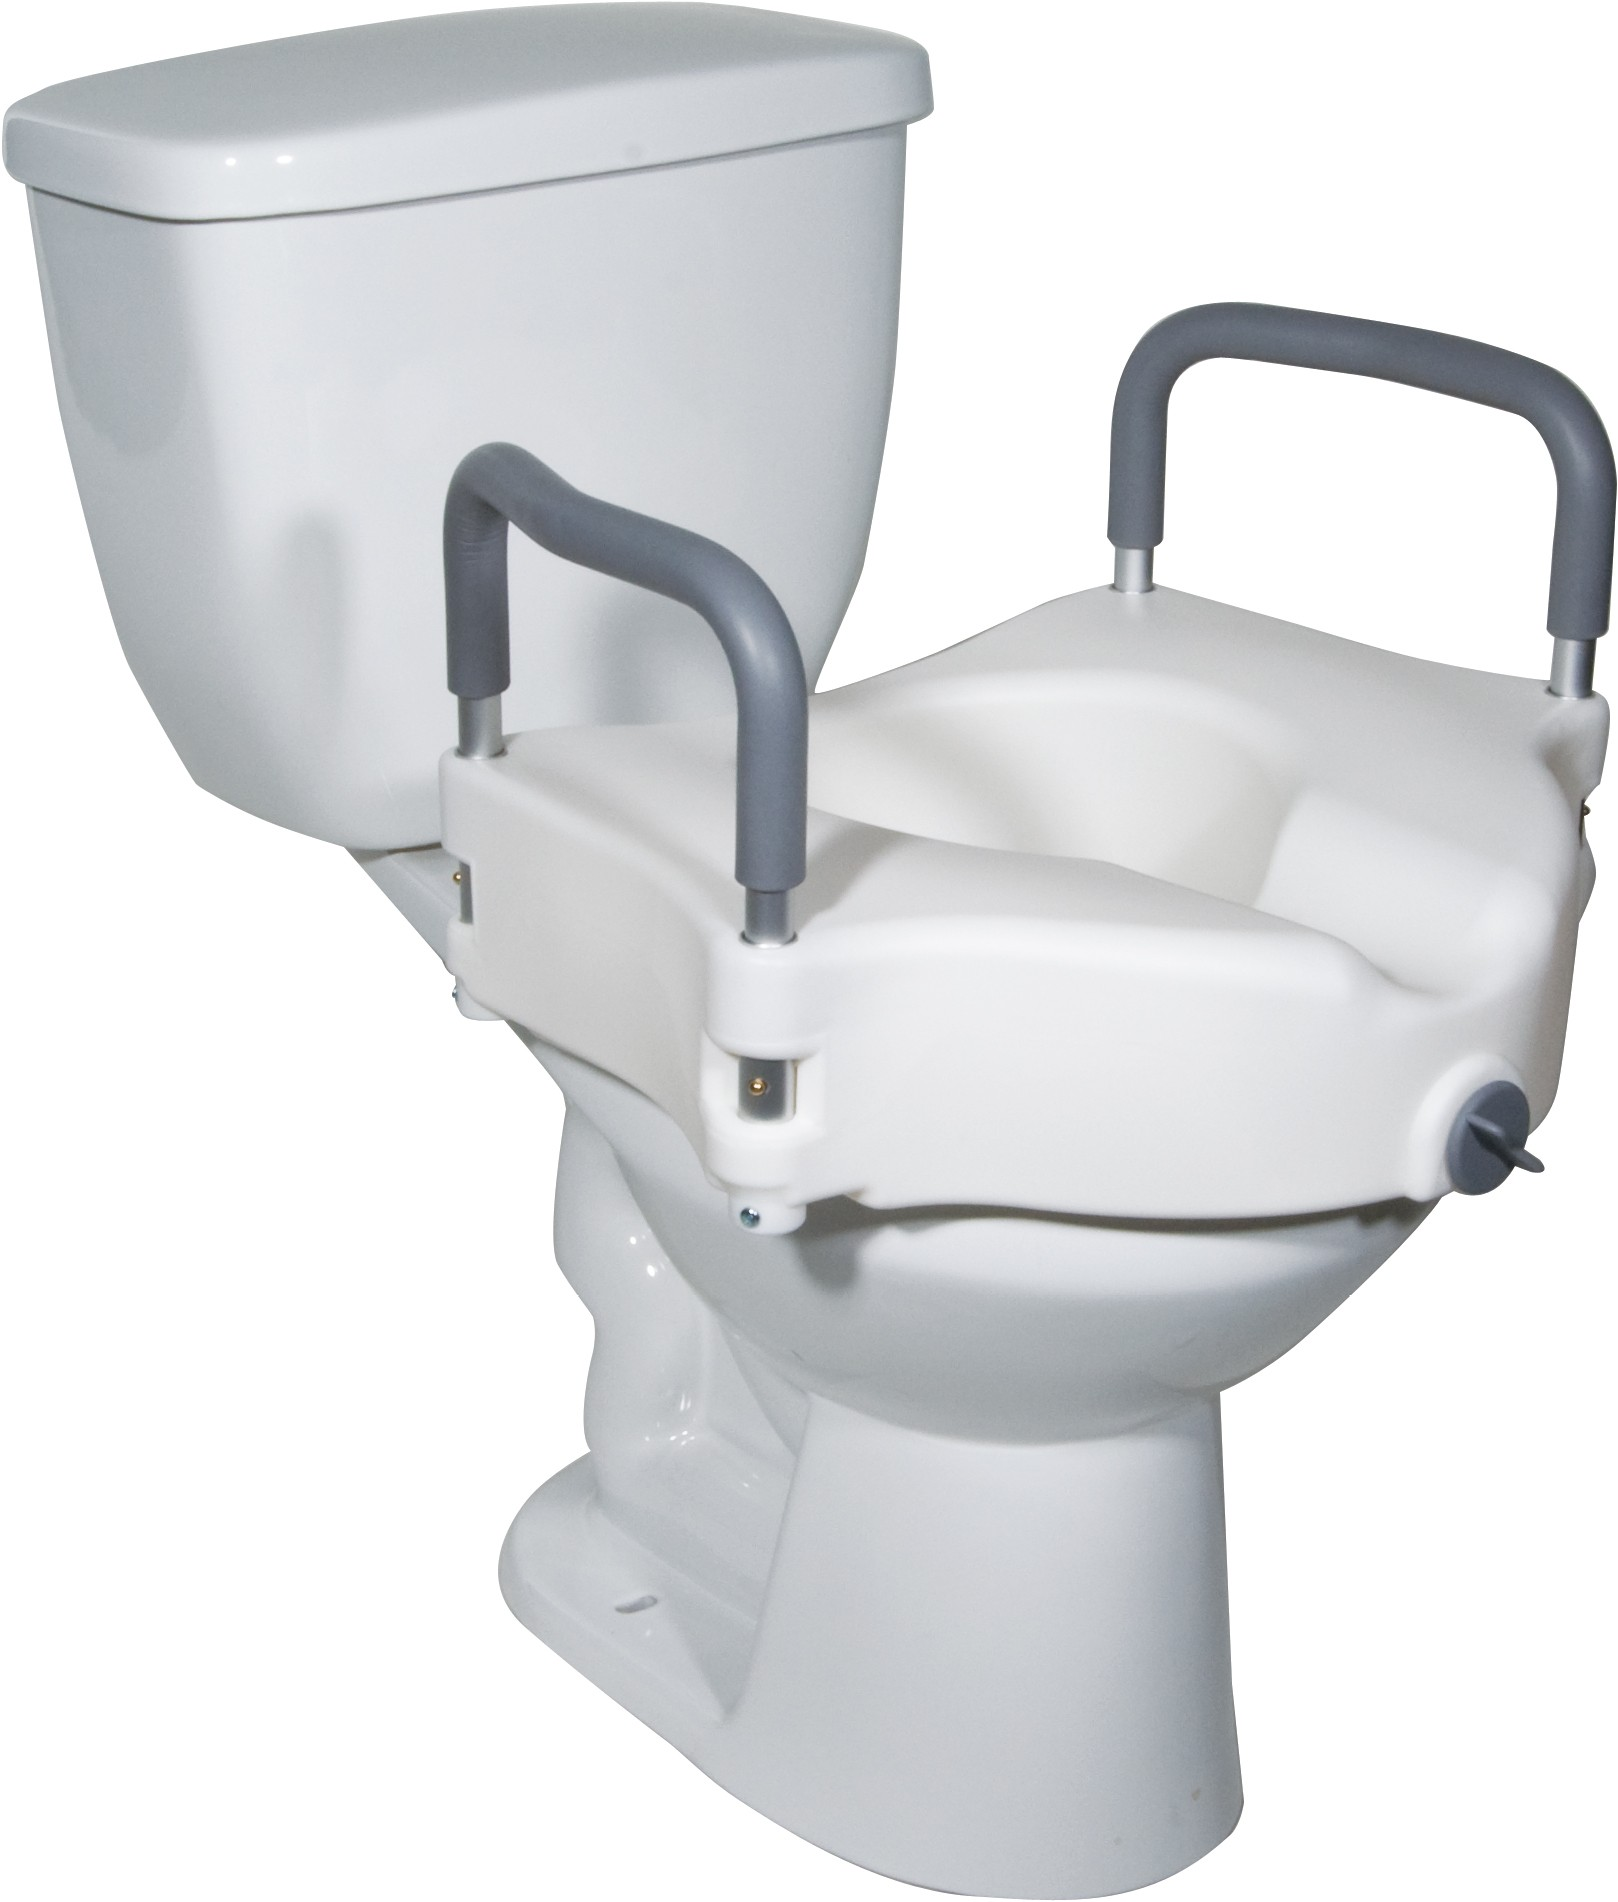 Raised Toilet Seat - Northeast Mobility